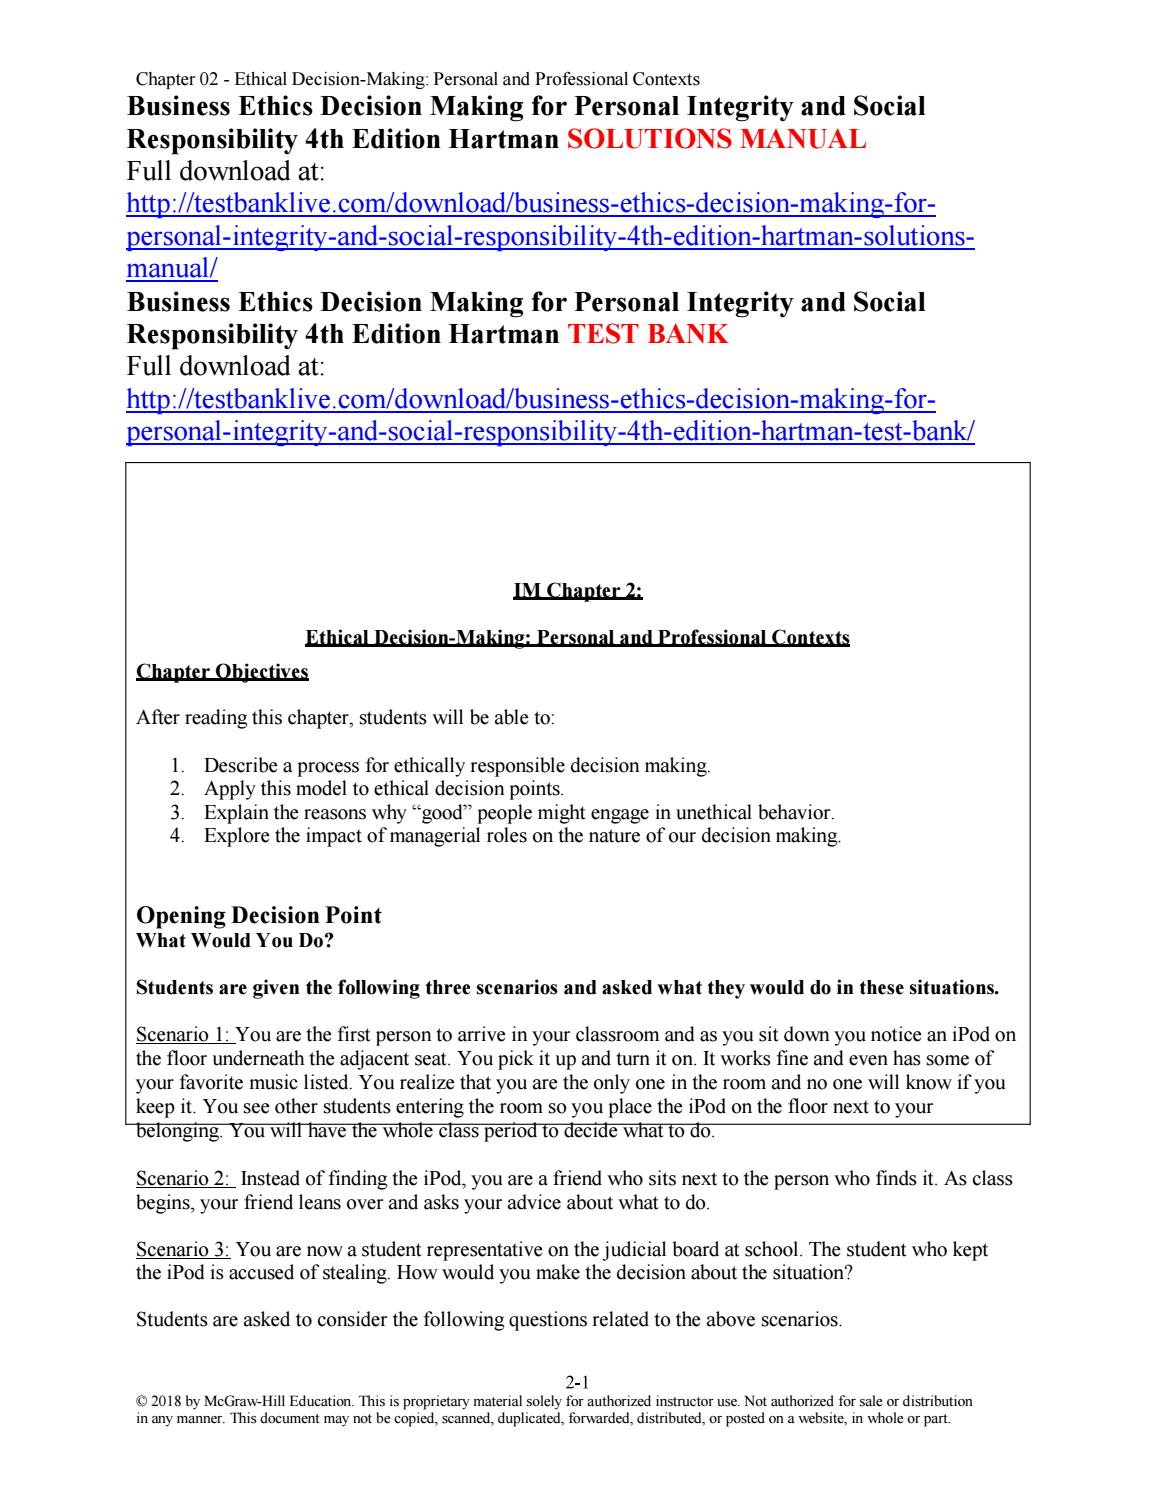 Business ethics decision making for personal integrity and